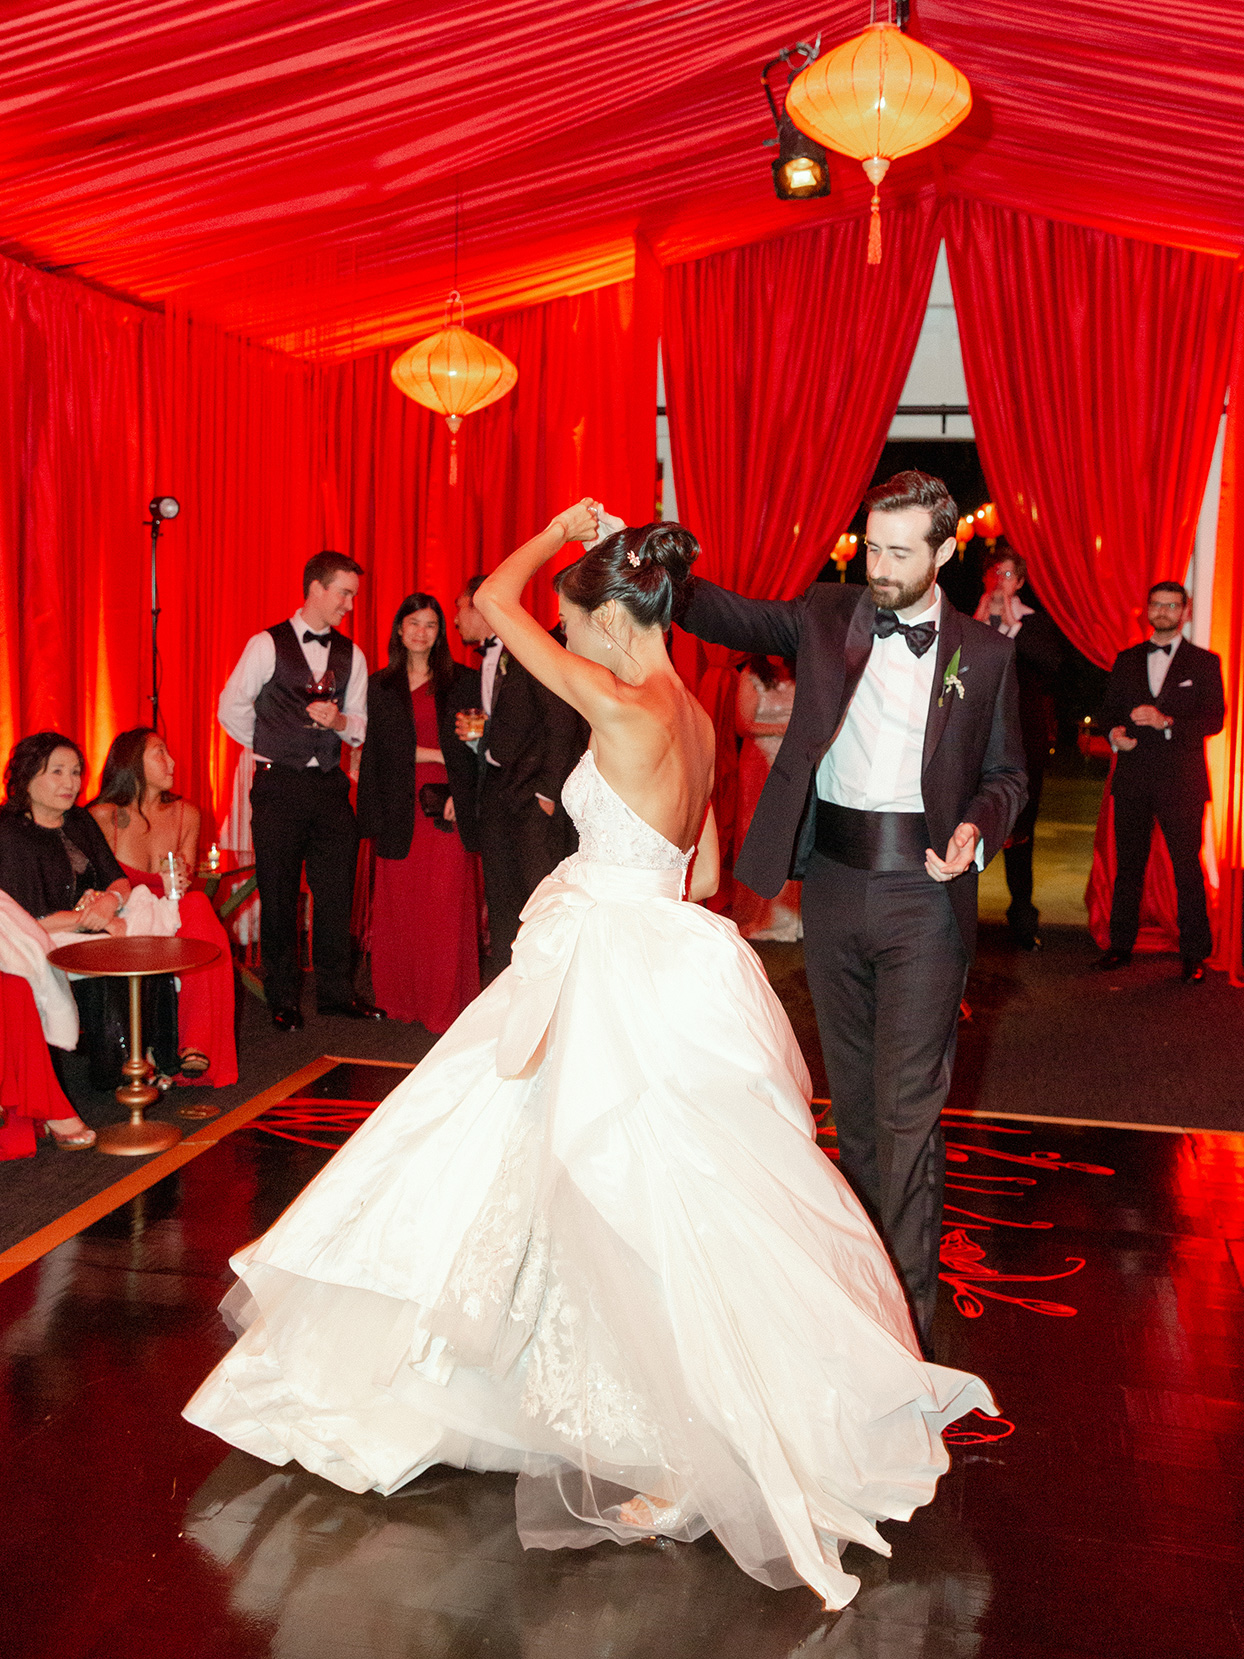 Bride and groom dancing in red-draped room